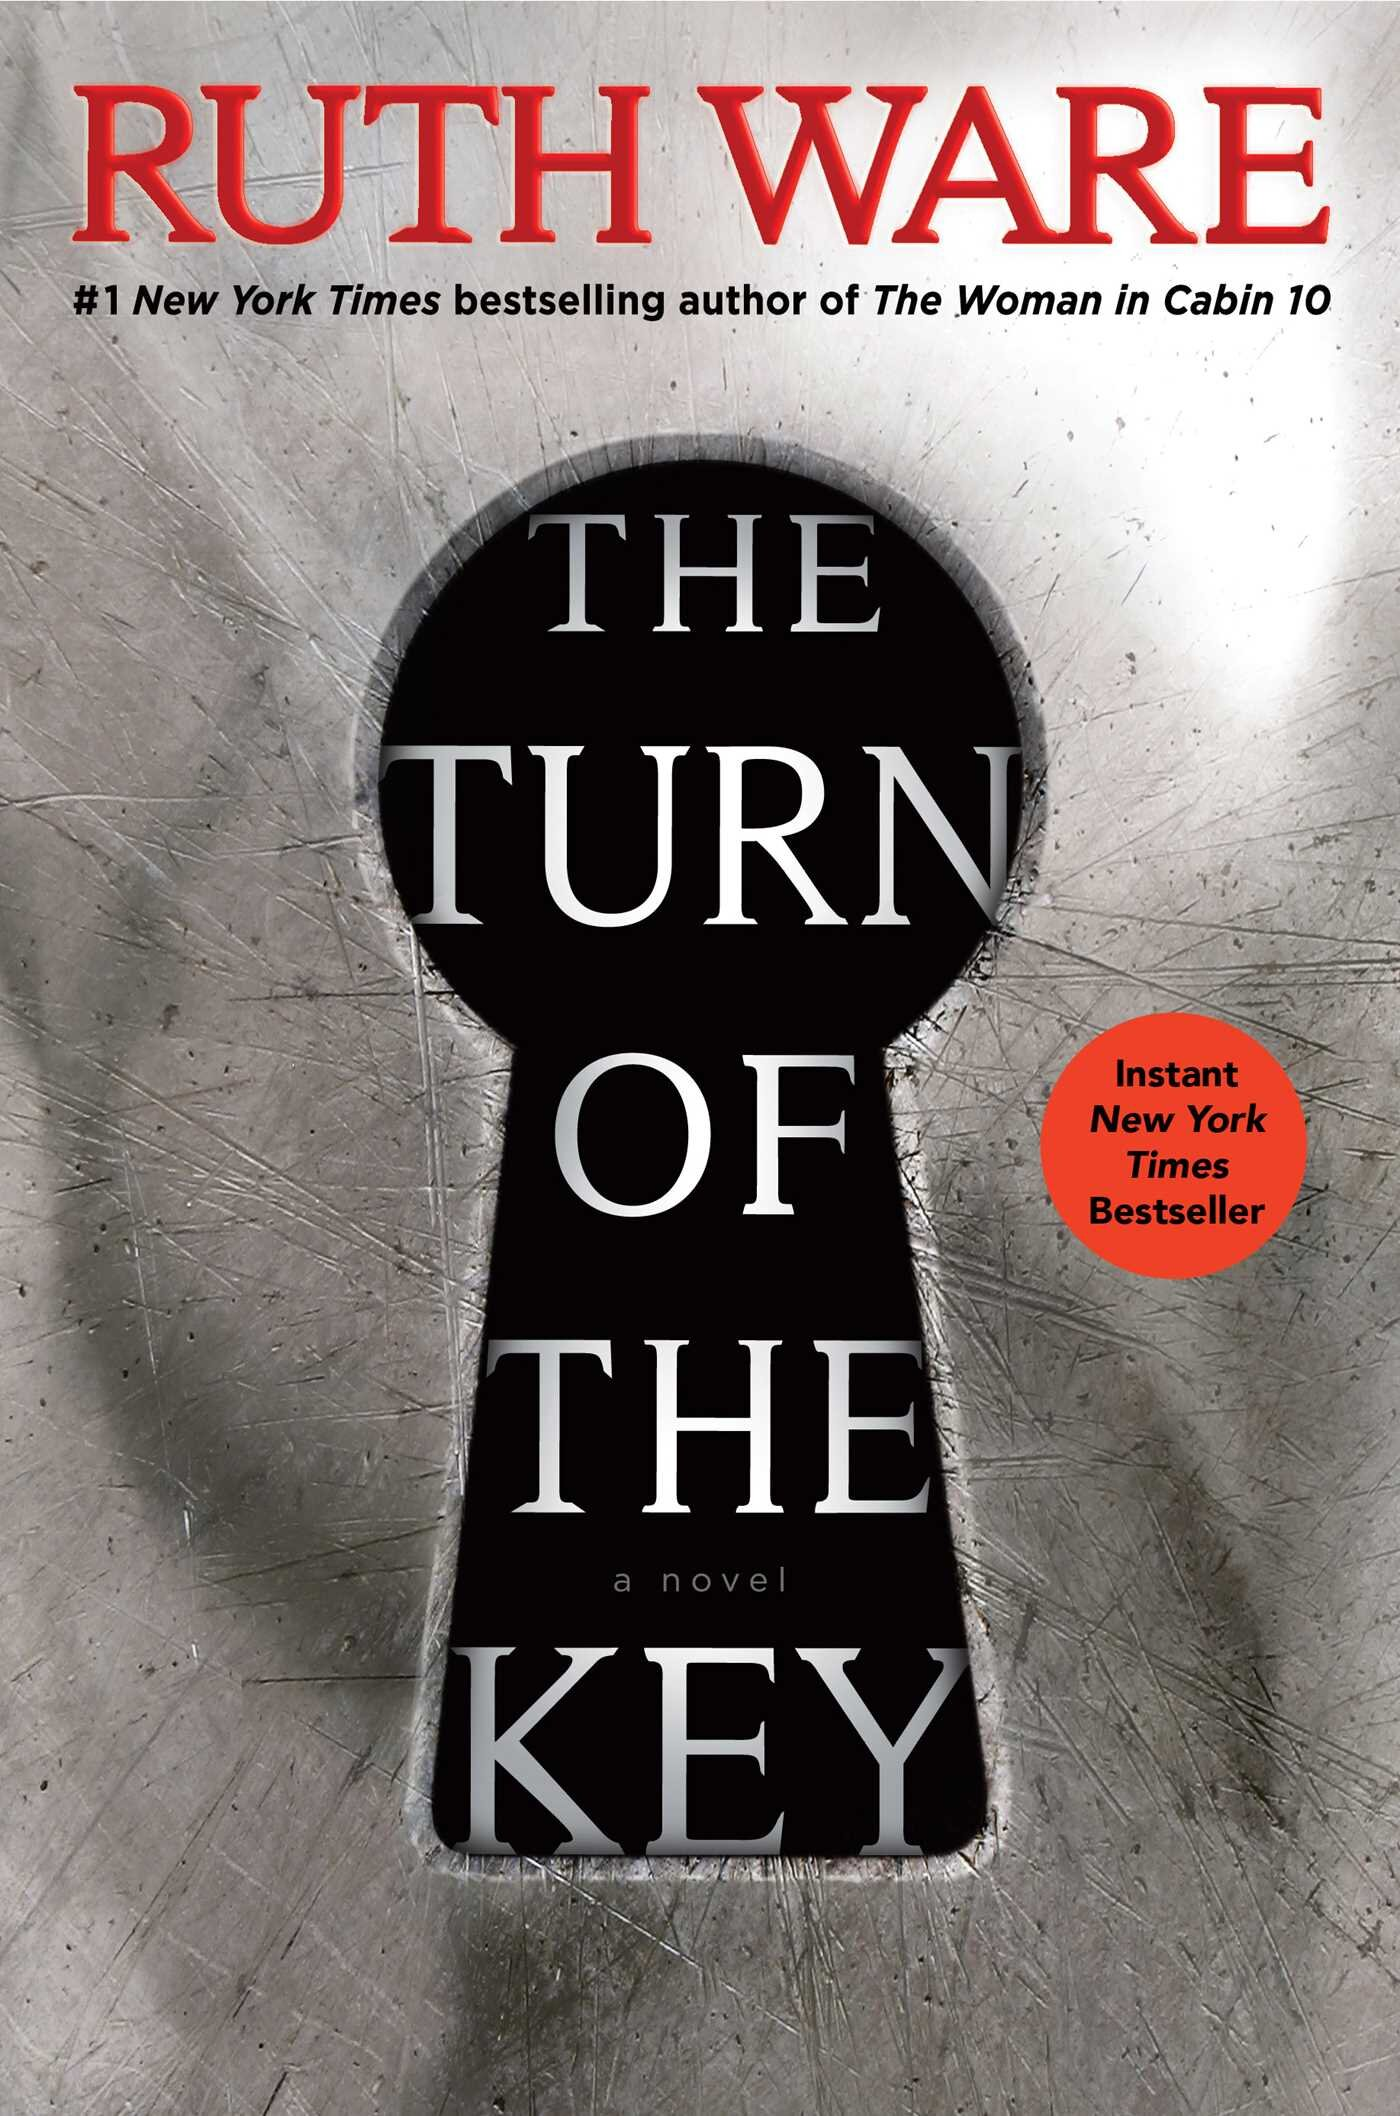 "The Turn of the Key by Ruth Ware - Rating: 3/5I haven't read a thriller in so long so when The Turn of the Key was offered on Book of the Month I scooped it up. The story opens as a letter written to a lawyer from prison. Rowan is in jail for murder, one she insists she did not commit. In the letter to the lawyer she starts from the beginning. As a fed up London pre-school teacher, Rowan takes a ""too good to be true"" nanny position for a family of architects in the moors of Scotland. Their home is an old estate updated with smart home capabilities that are both cool and creepy to Rowan. Strangely, every nanny before Rowan left within the first week, but Rowan needs this job so even when things start to go awry, she refuses to let it spook her. From the beginning we know Rowan is hiding something and eventually that secret catches up to her the same night the death happens. The book is a fast read and once I reached the end and all the dots were connected I was disappointed. I felt that the story could have been much more thrilling and the end fell short to the build up.Is it a must read? If you're a newbie to thrillers this would be a good one to start with, but die hard thrill readers won't be impressed."